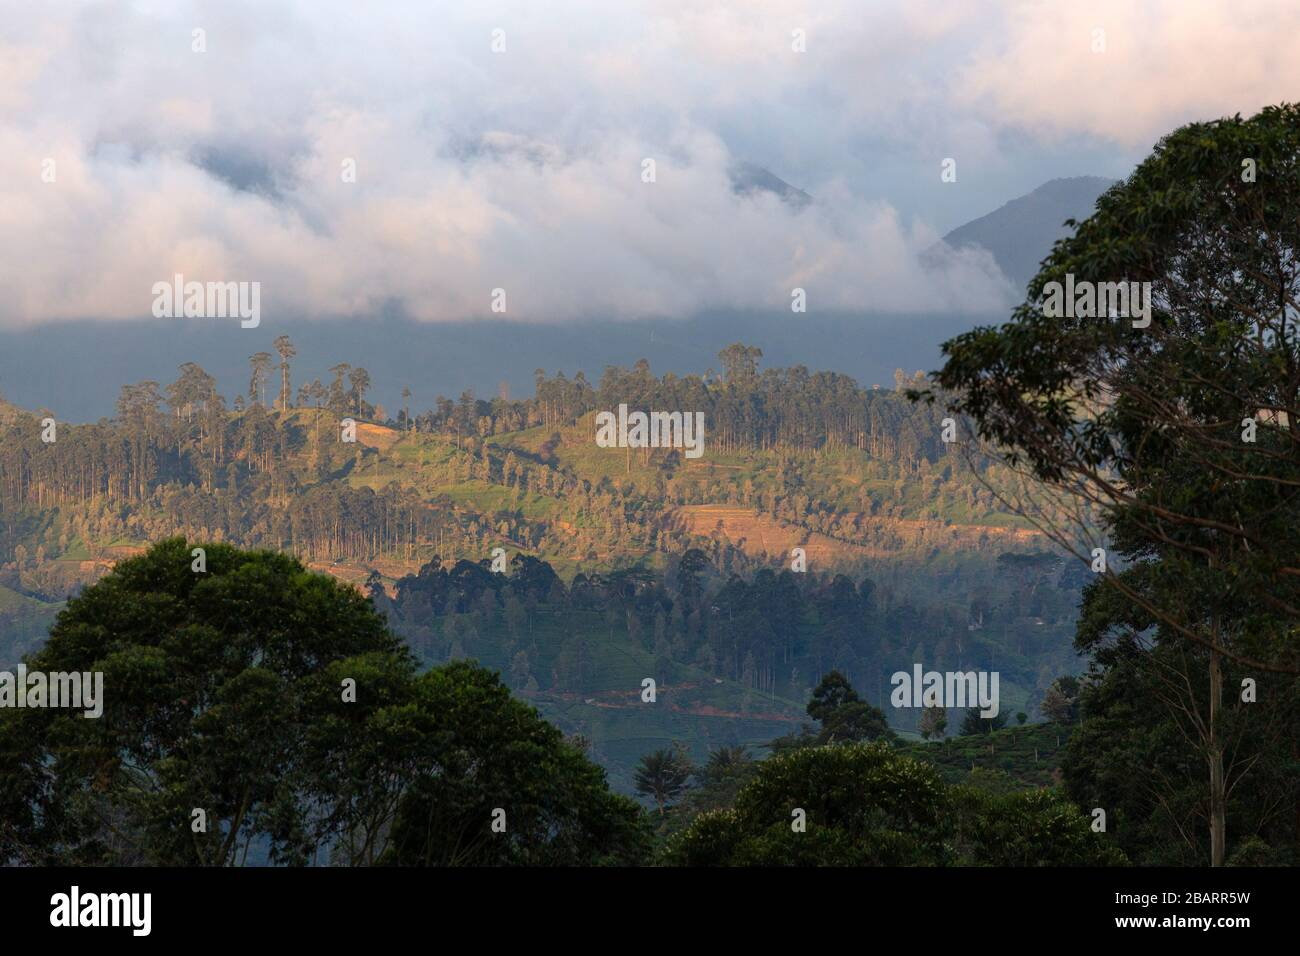 Late Afternoon Landscape View At Dalhousie In The Hill Country Of Sri Lanka Stock Photo Alamy